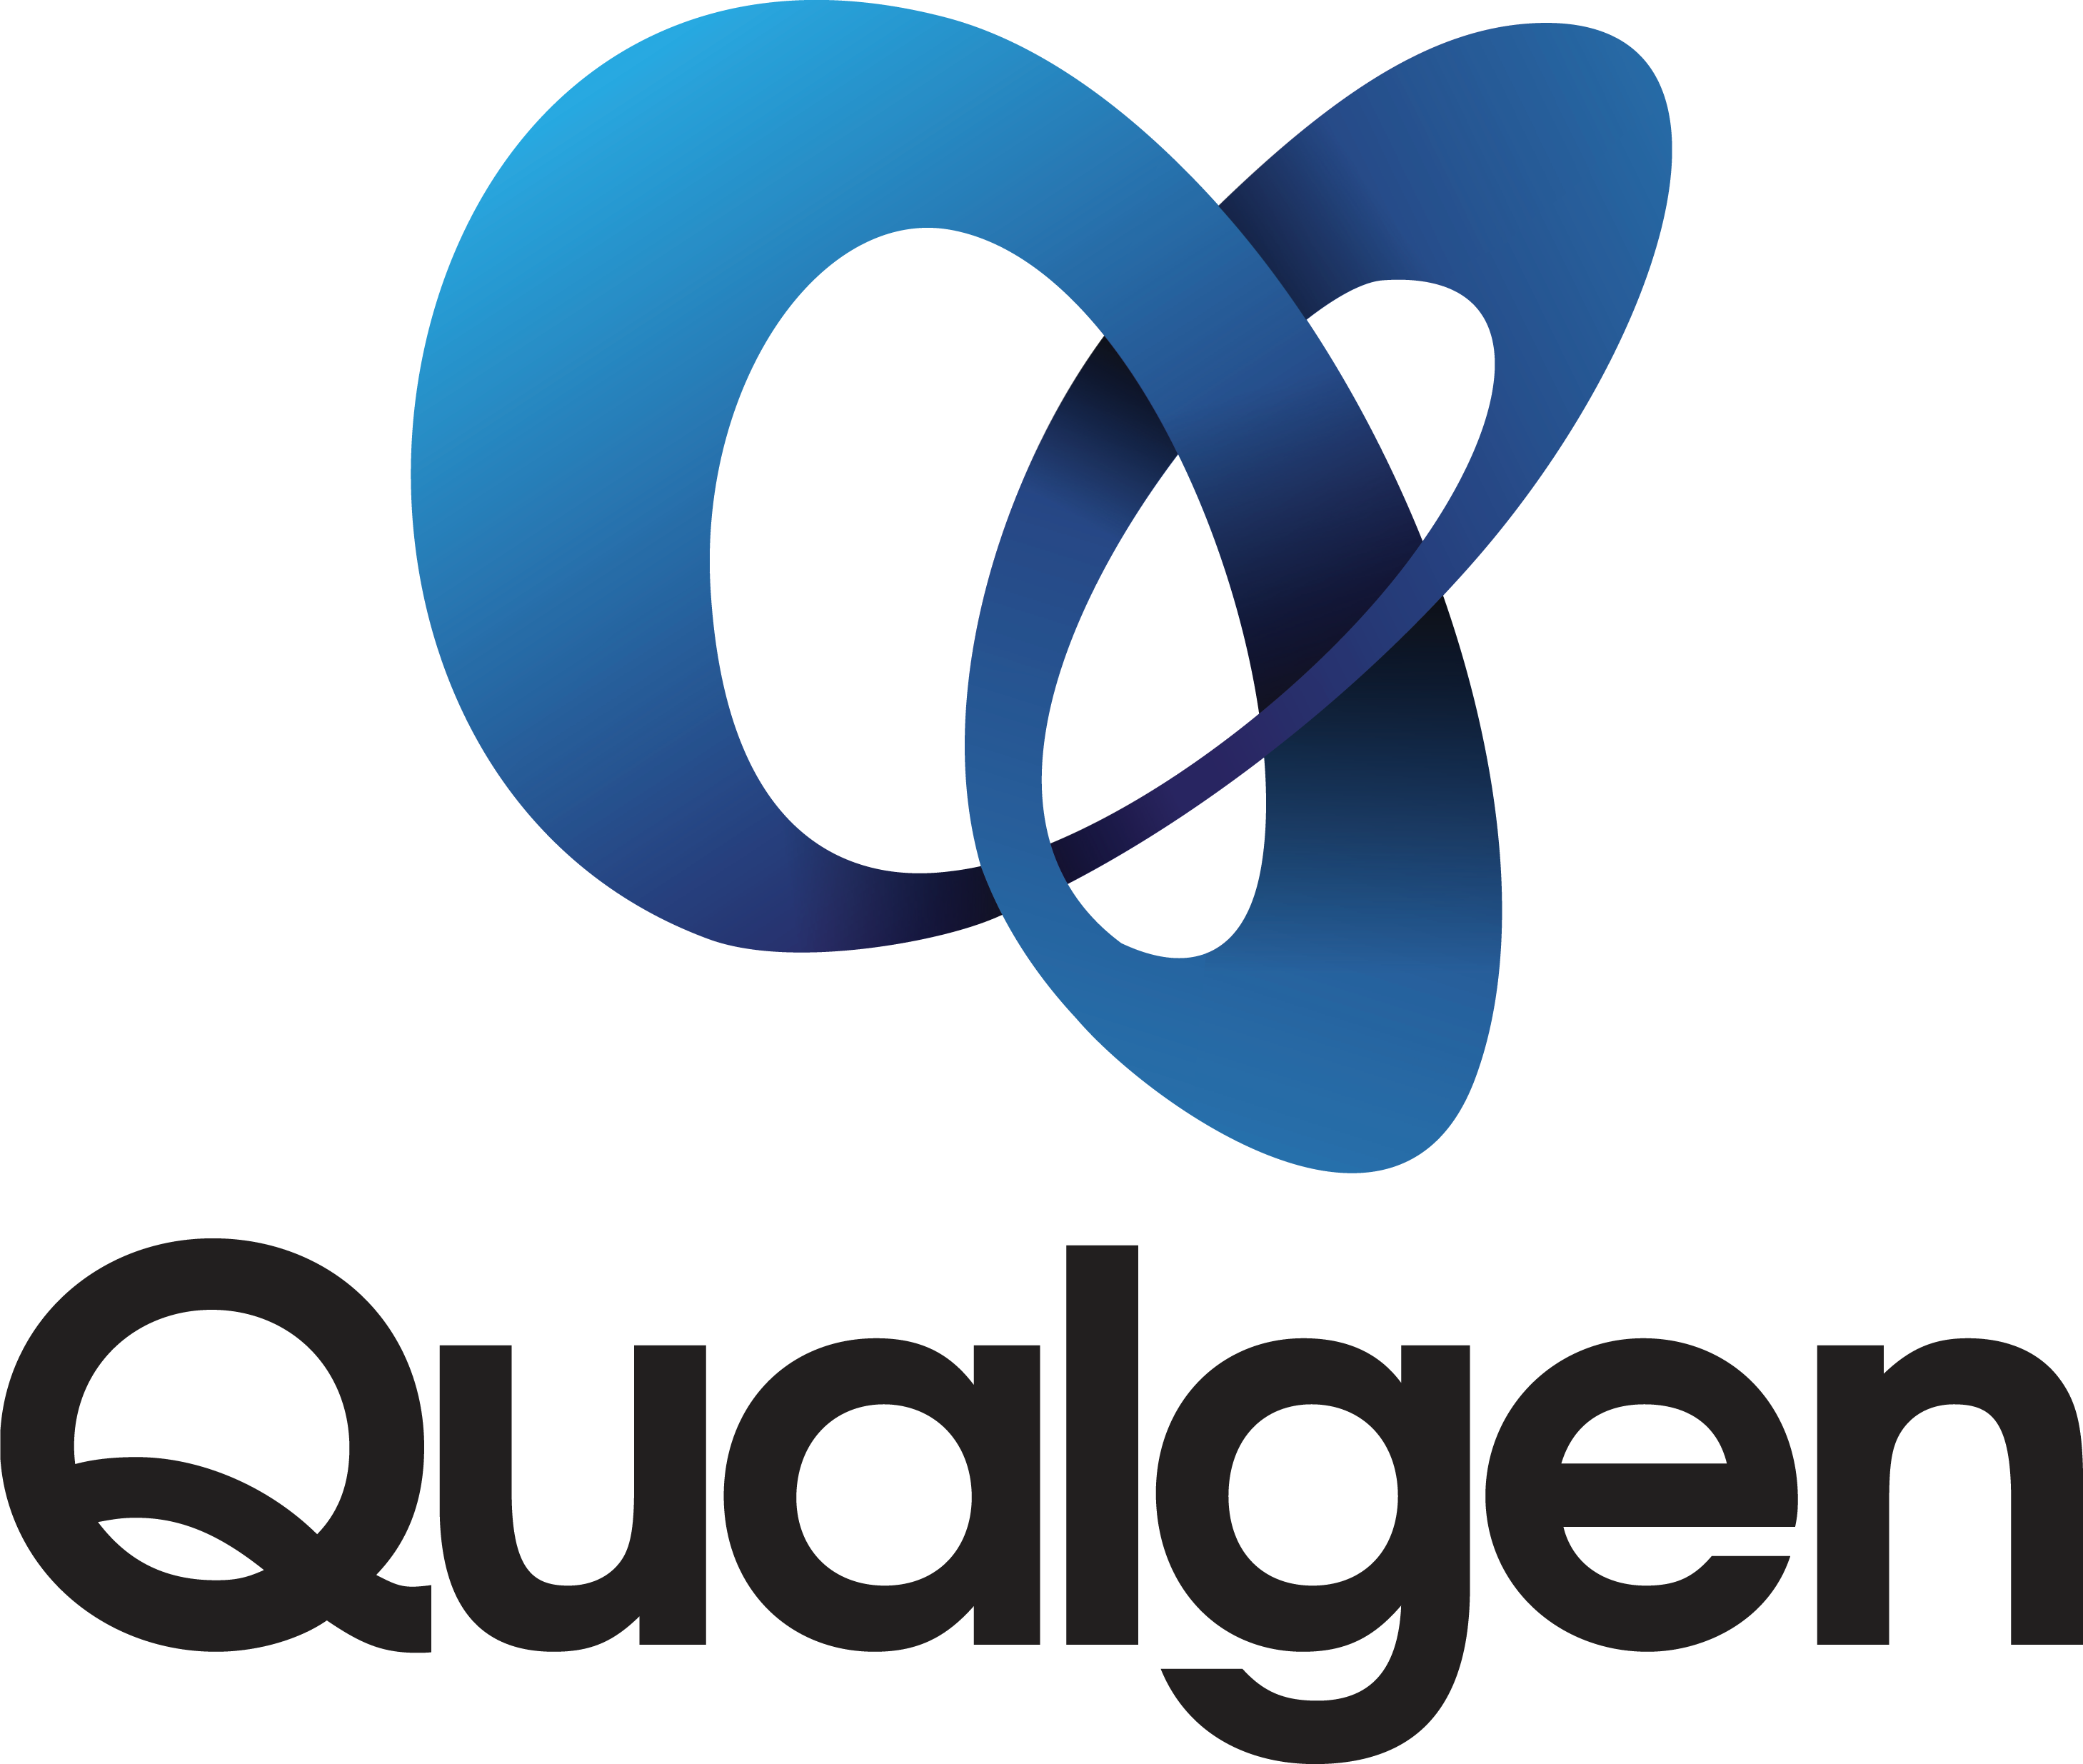 Qualgen Has Partnered With Salvation Army to Help Those in Need